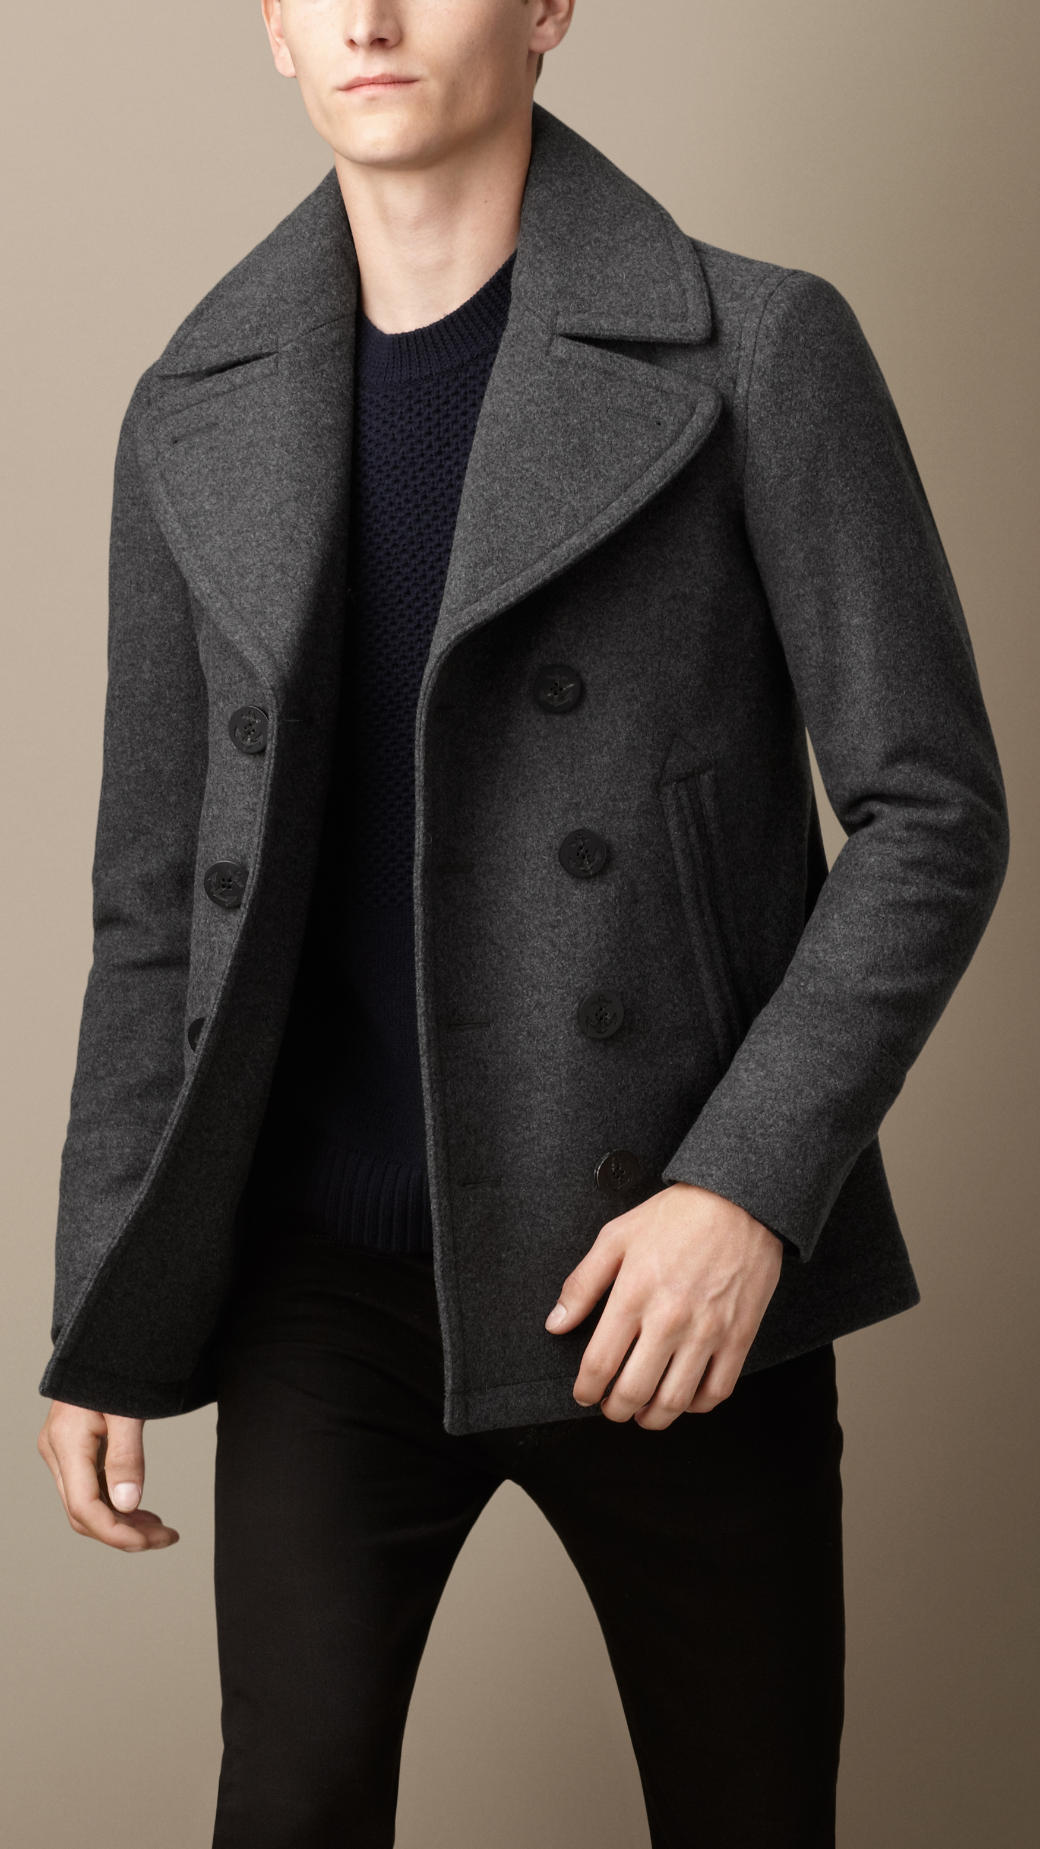 Discover our range of Coats & Jackets for Men at Boden Day Returns Guarantee · Free Delivery over 49$ · 20% Off newbez.ml: Parkas, Trench Coats, Macs, Blazers, Coatigans, Capes.